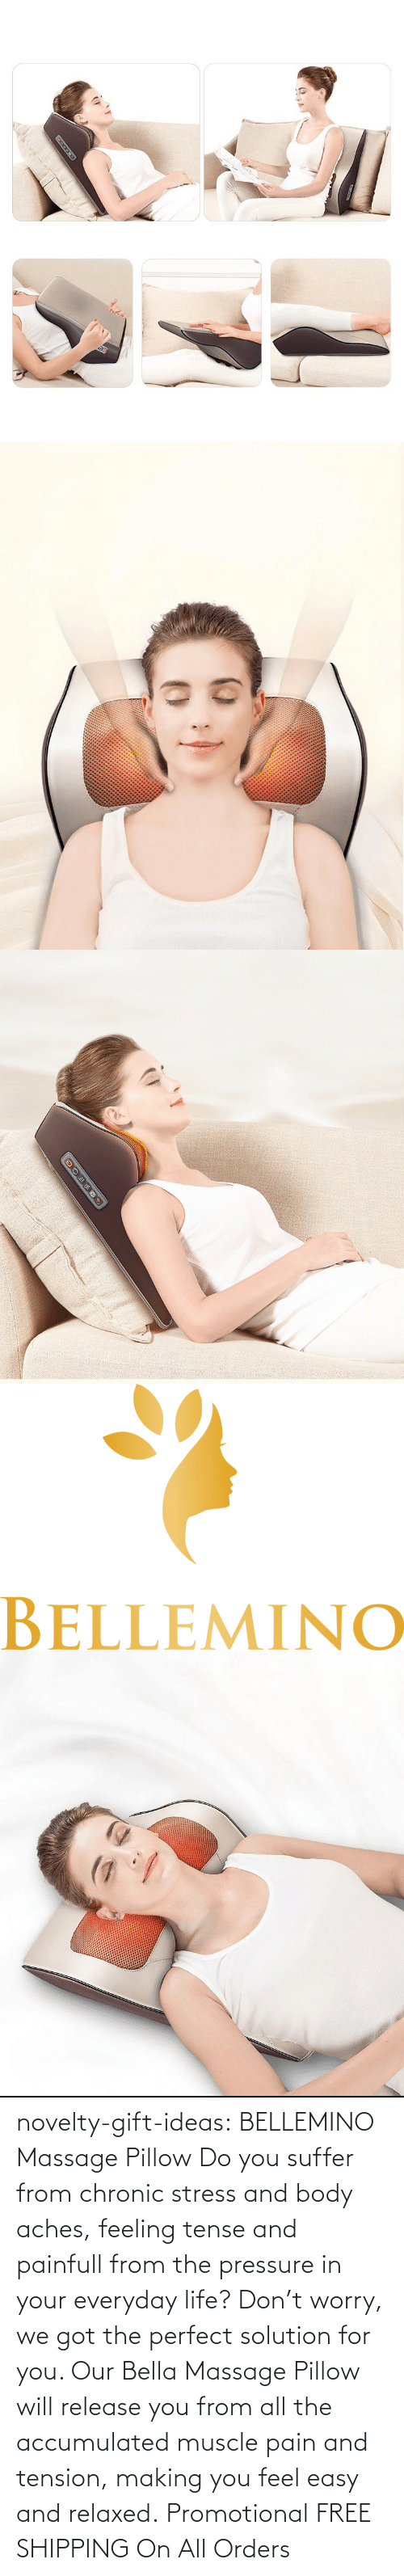 bella: novelty-gift-ideas:   BELLEMINO Massage Pillow     Do you suffer from chronic stress and body aches, feeling tense and painfull from the pressure in your everyday life? Don't worry, we got the perfect solution for you. Our Bella Massage Pillow will release you from all the accumulated muscle pain and tension, making you feel easy and relaxed.     Promotional FREE SHIPPING On All Orders